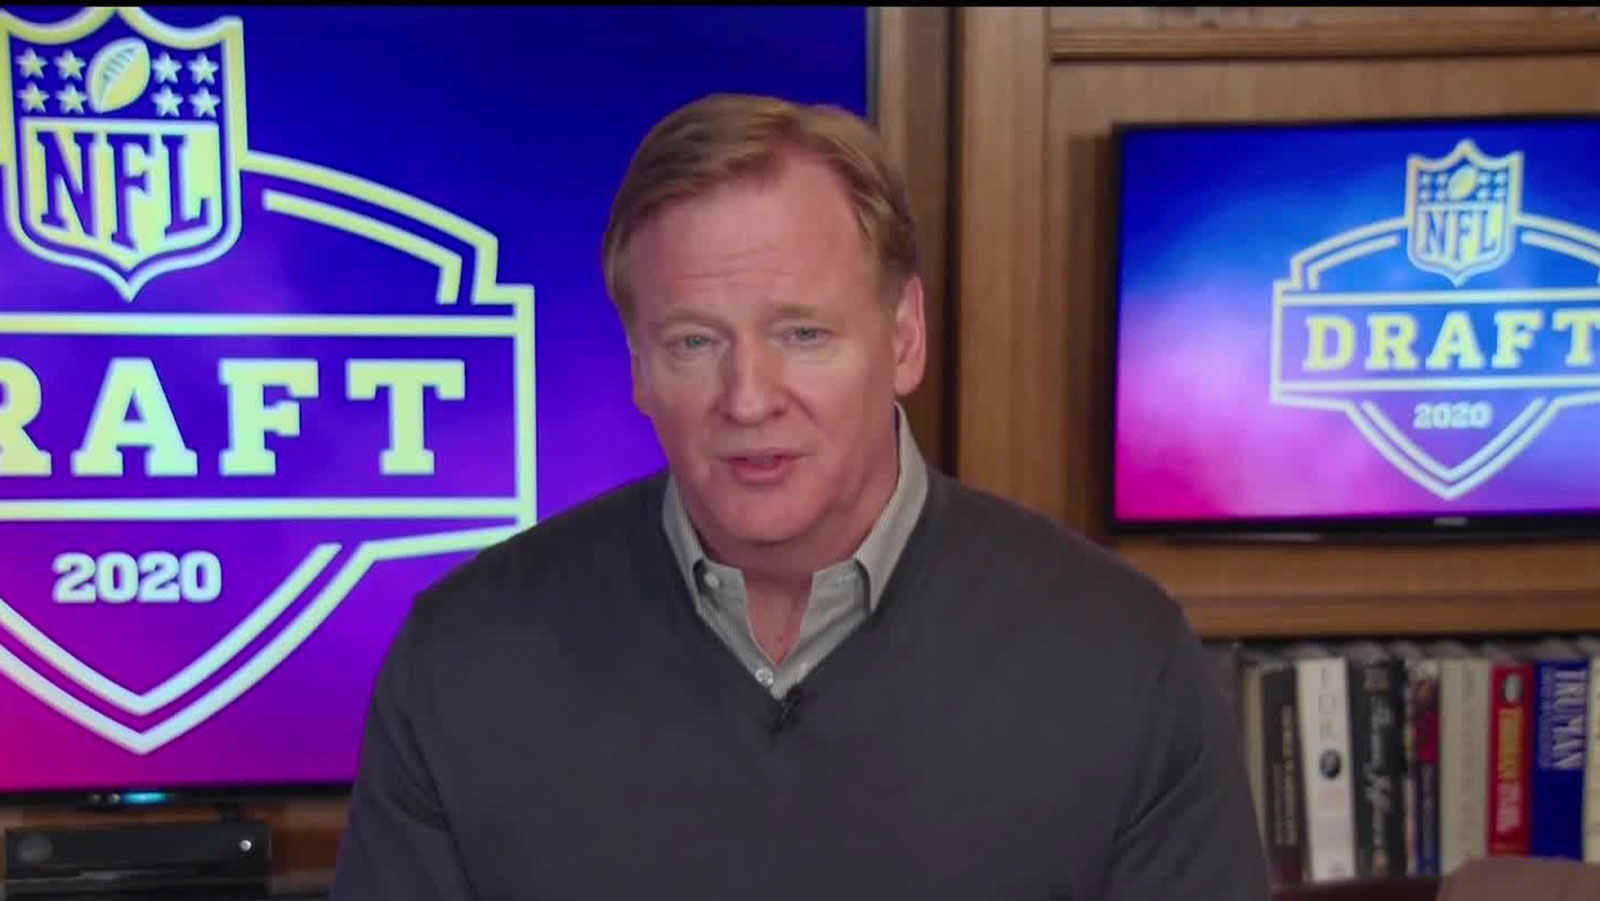 In this still image from video provided by the NFL, Commissioner Roger Goodell speaks just before the NFL football draft, April 23, 2020. (NFL via AP)